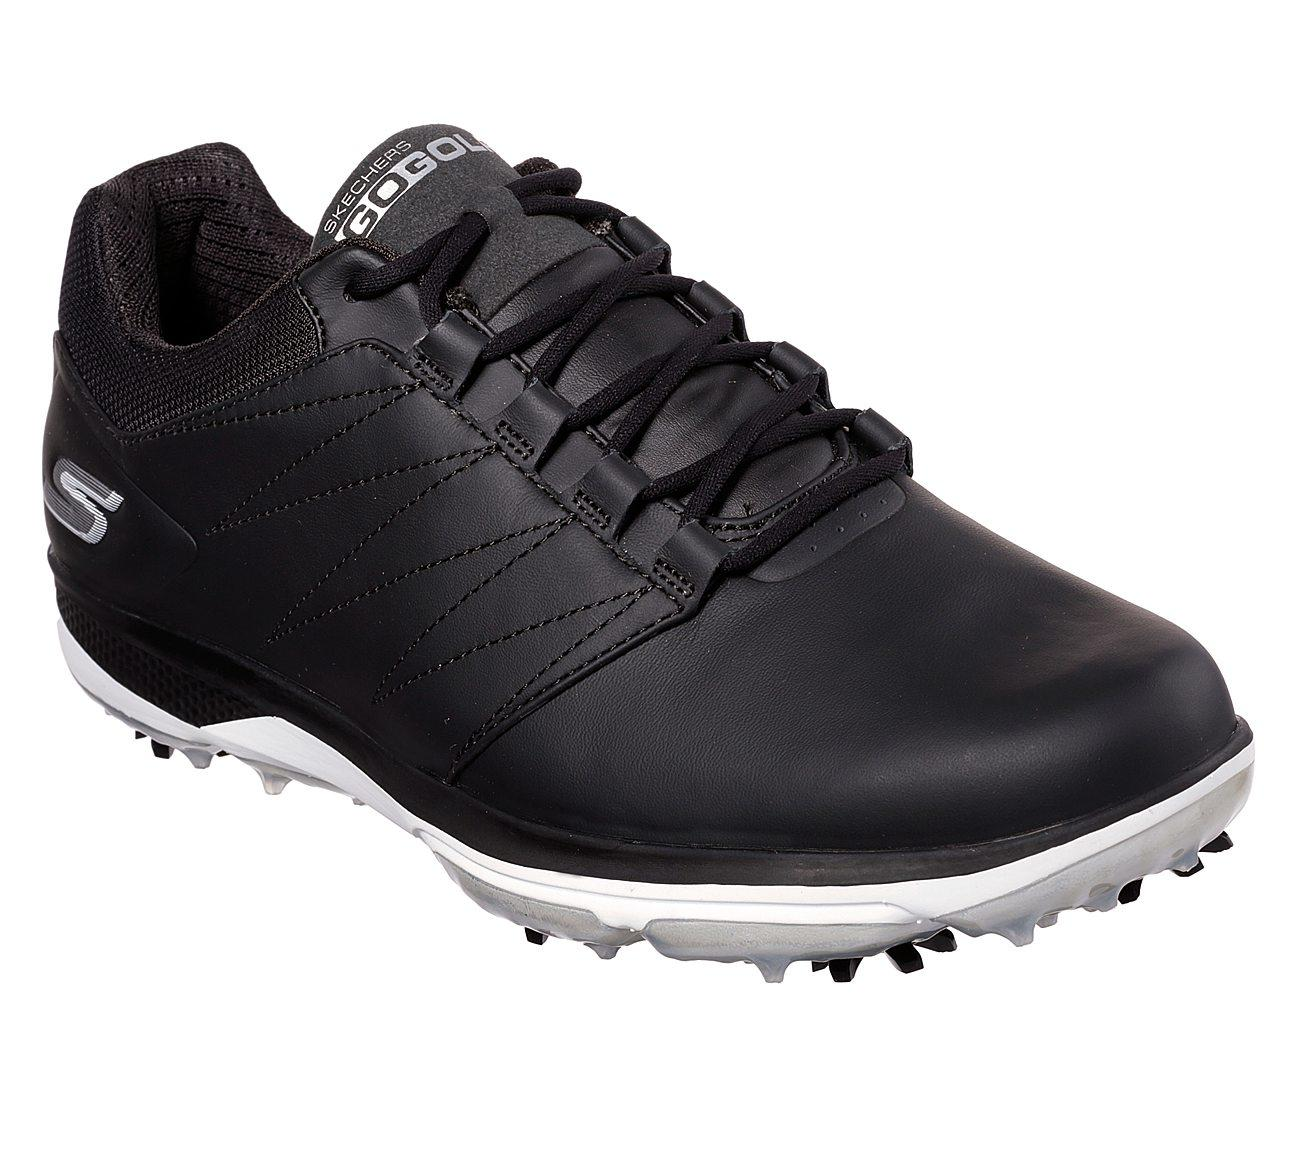 Skechers Go Golf Pro V4 54535 Black